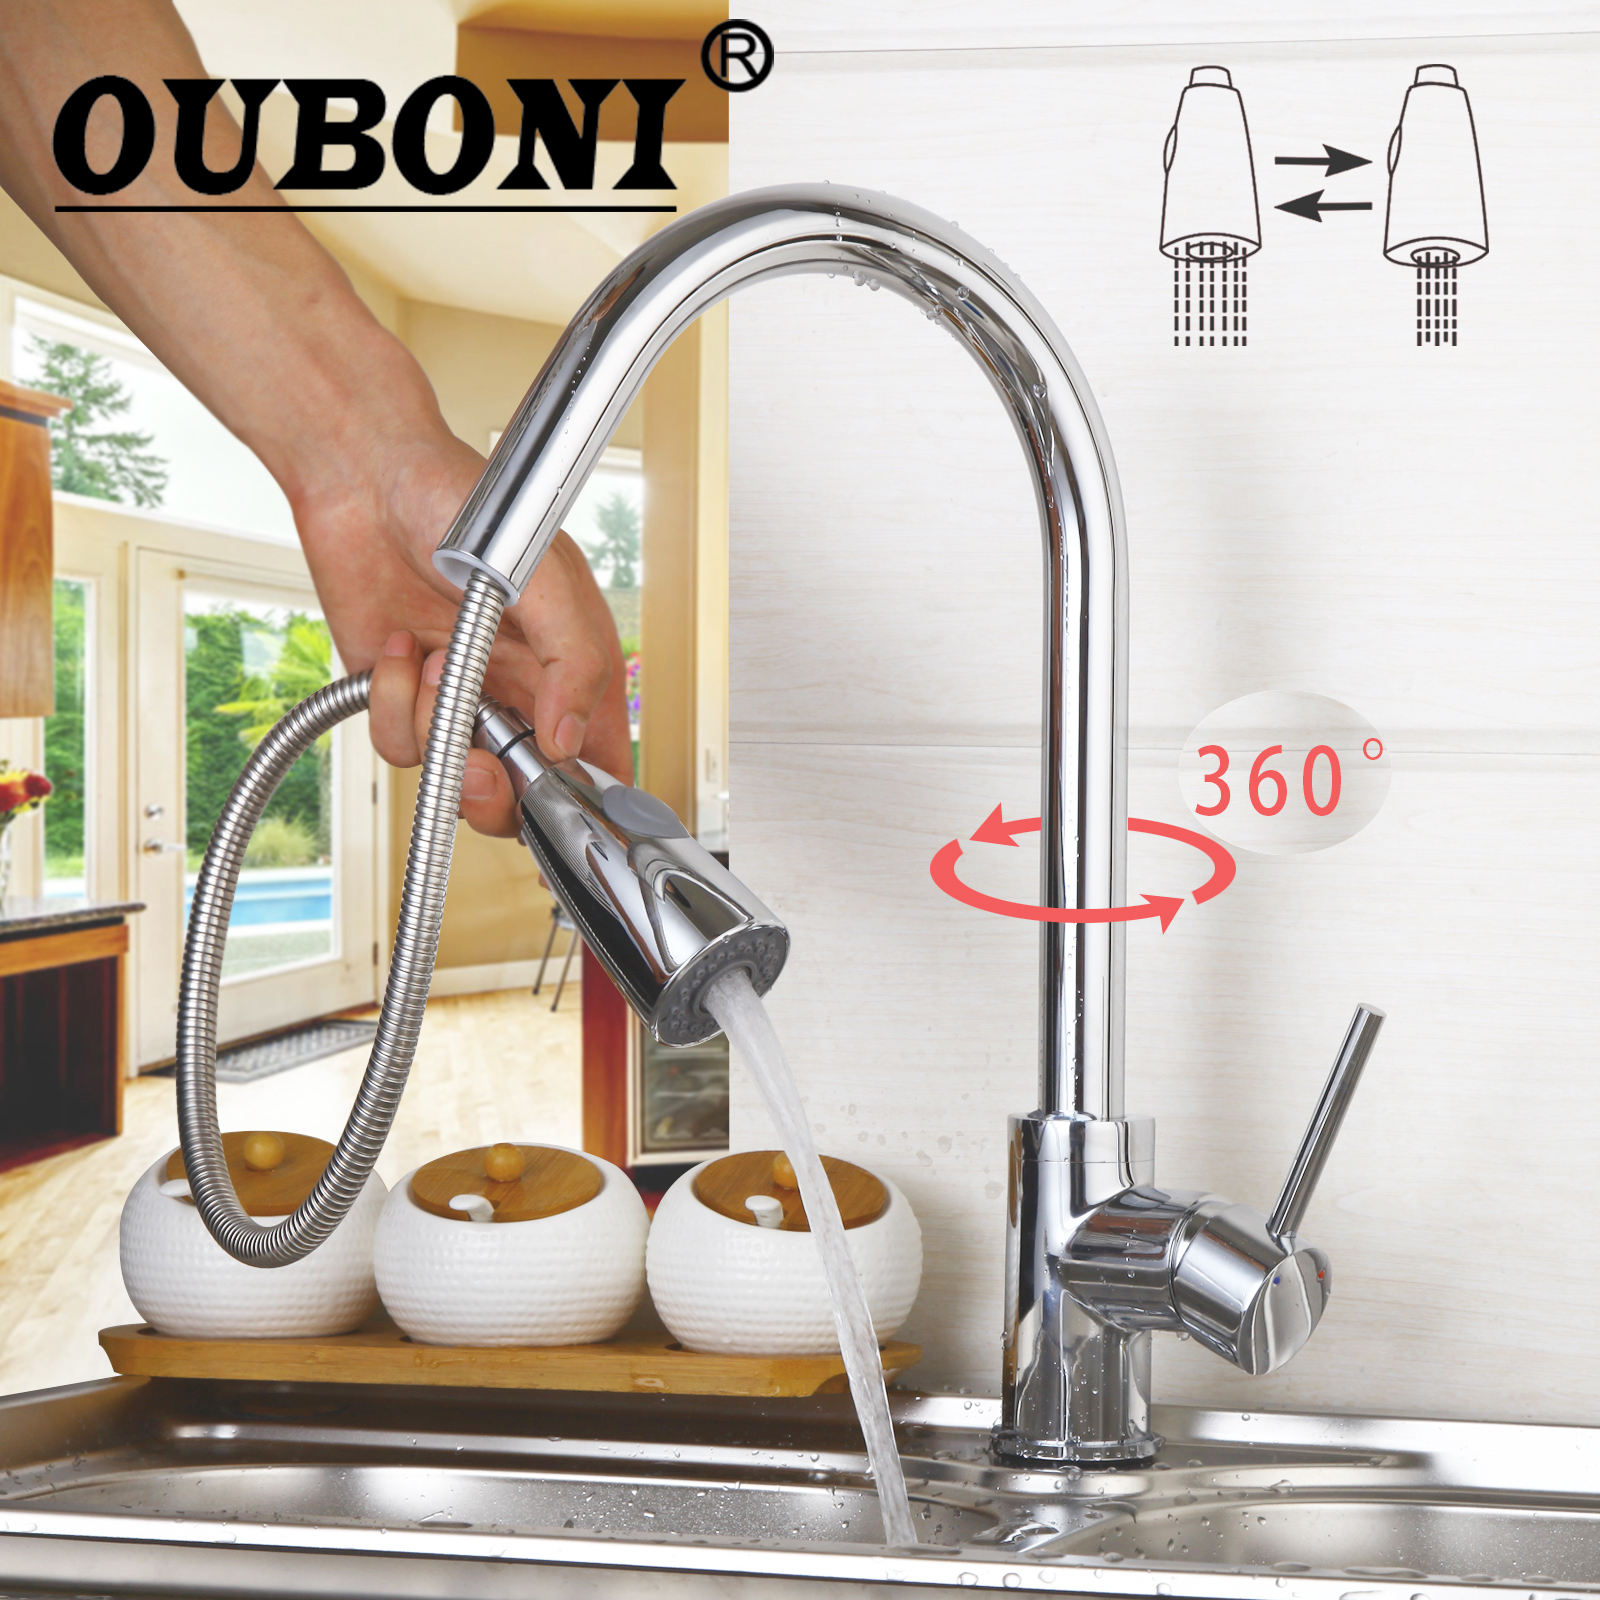 OUBONI 360 Swivel Stream Pull Out Spout Contemporary Kitchen Sink Faucet Polish Chrome Brass Hot & Cold Water Mixer Tap square kitchen faucet hot and cold pull out kitchen sink water mixer tap spray spout chrome